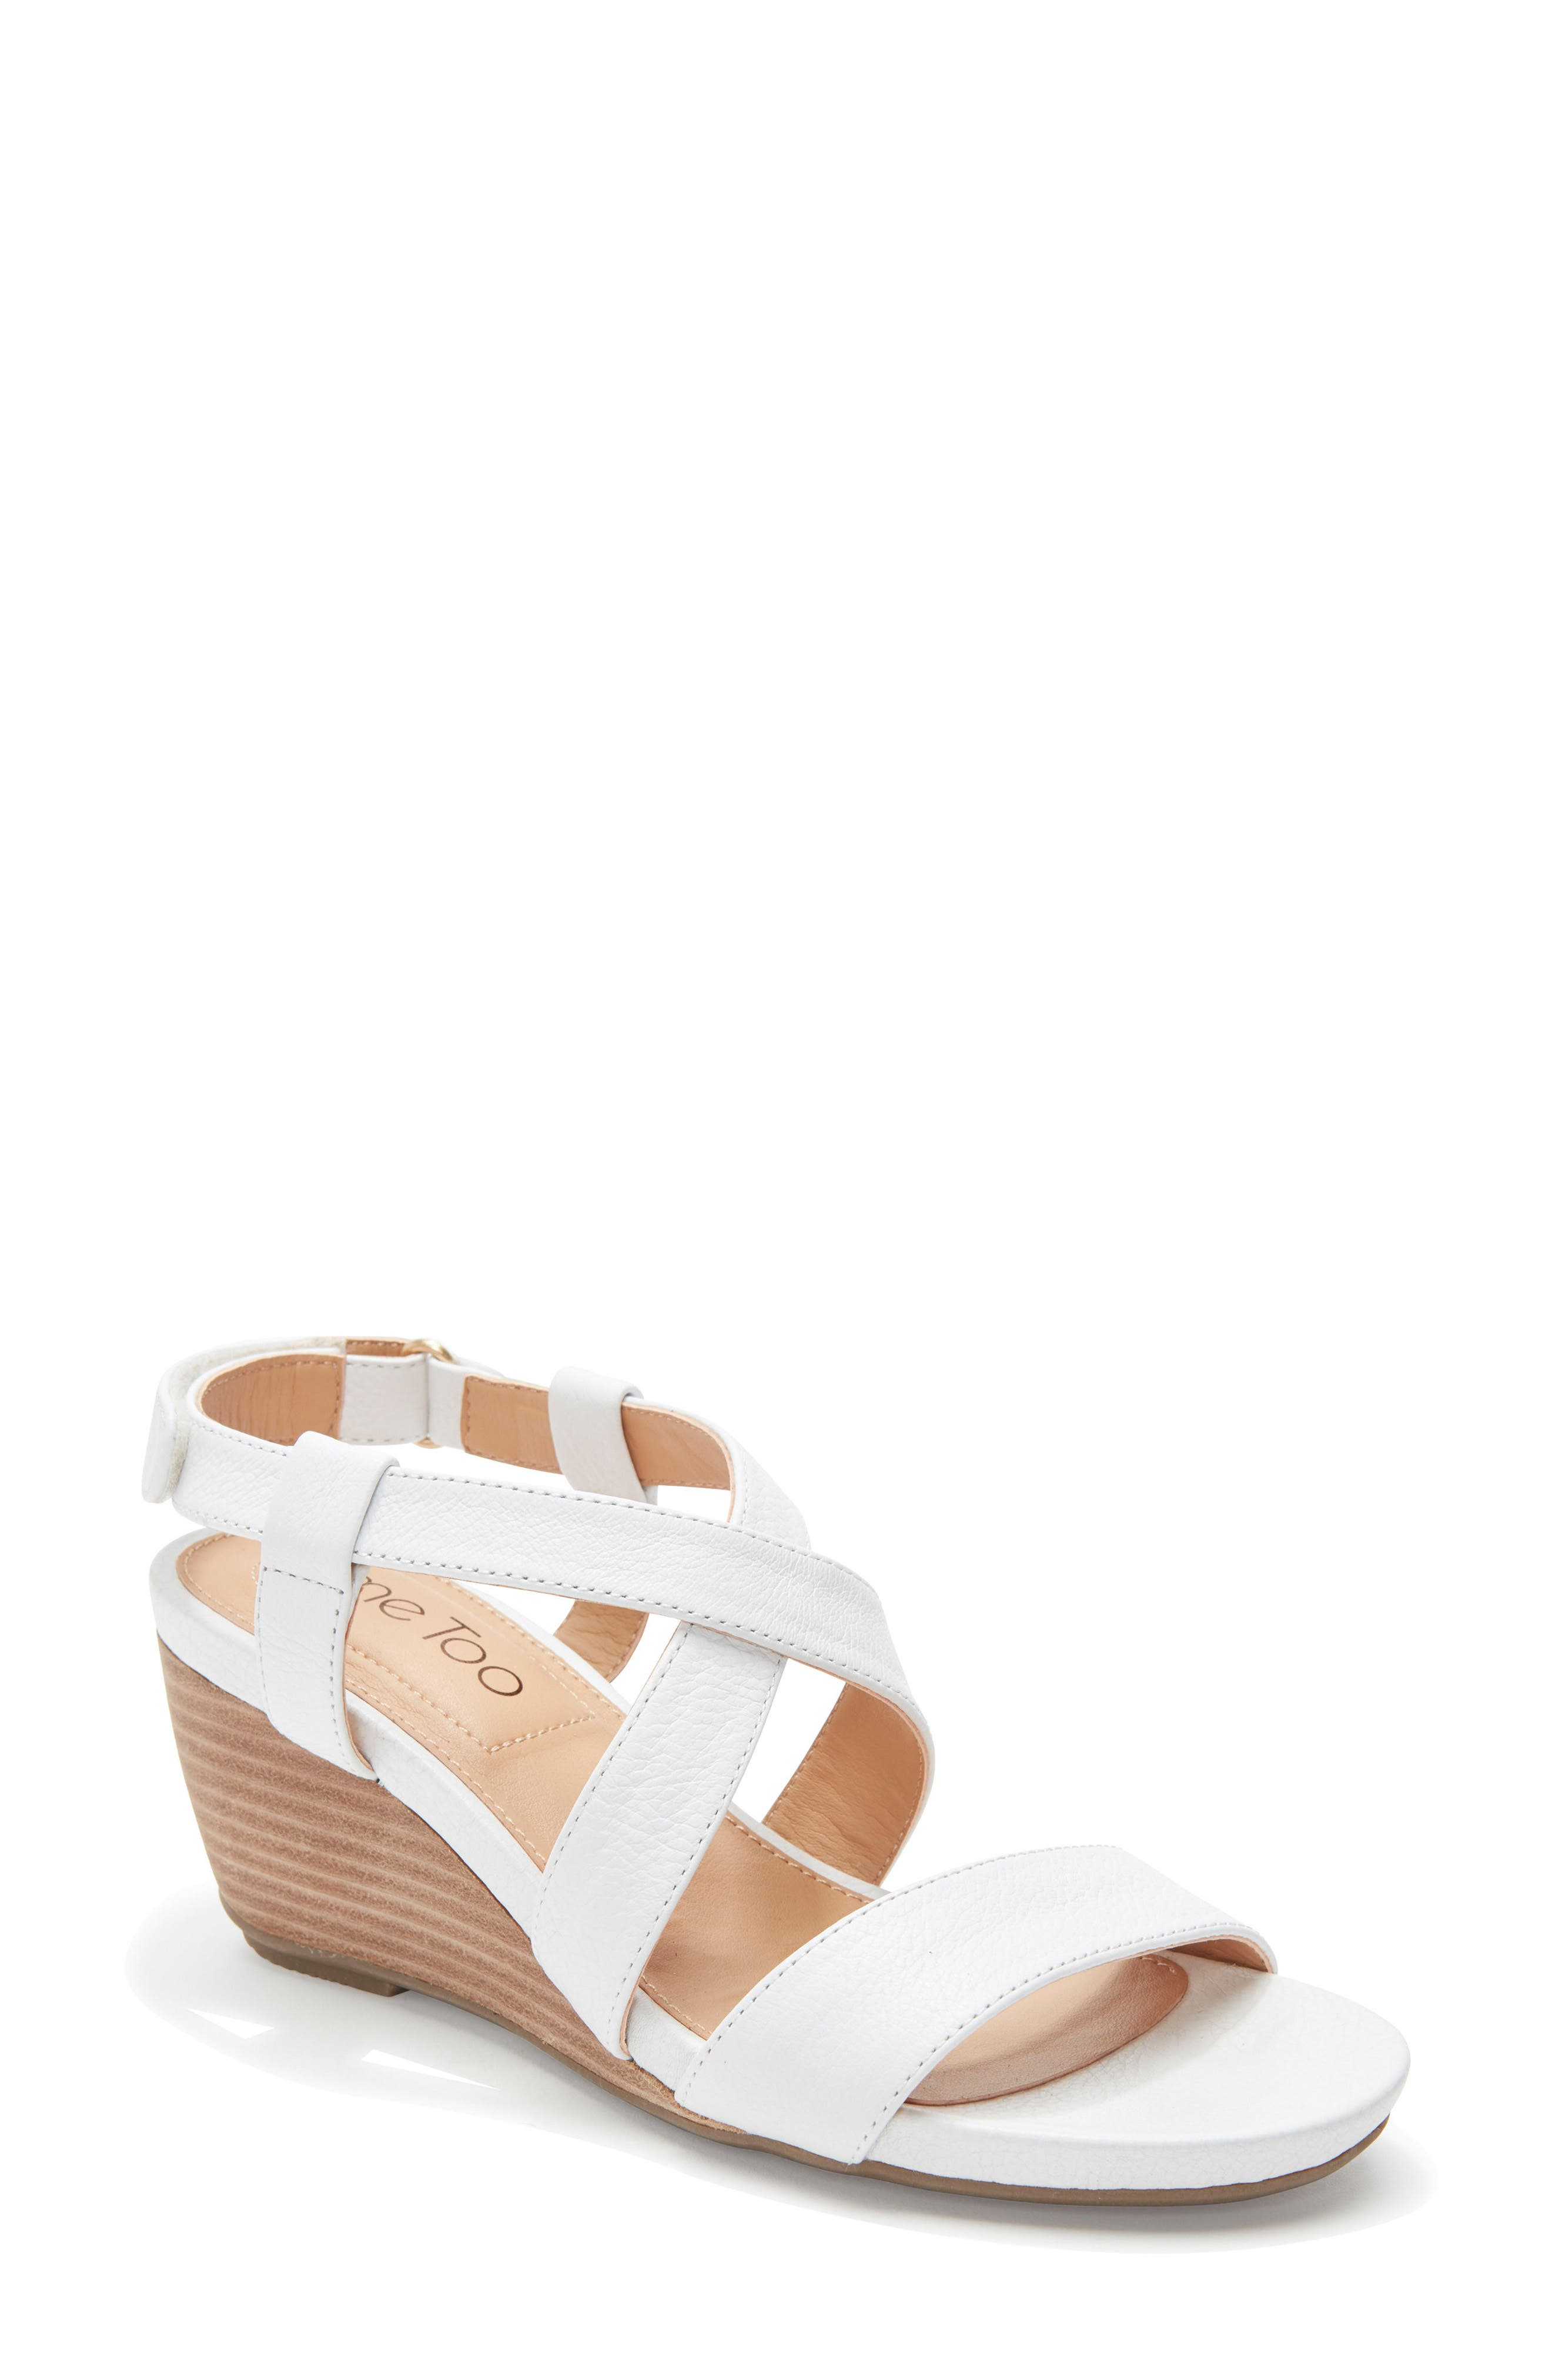 Payton Strappy Wedge,                             Main thumbnail 1, color,                             White Leather